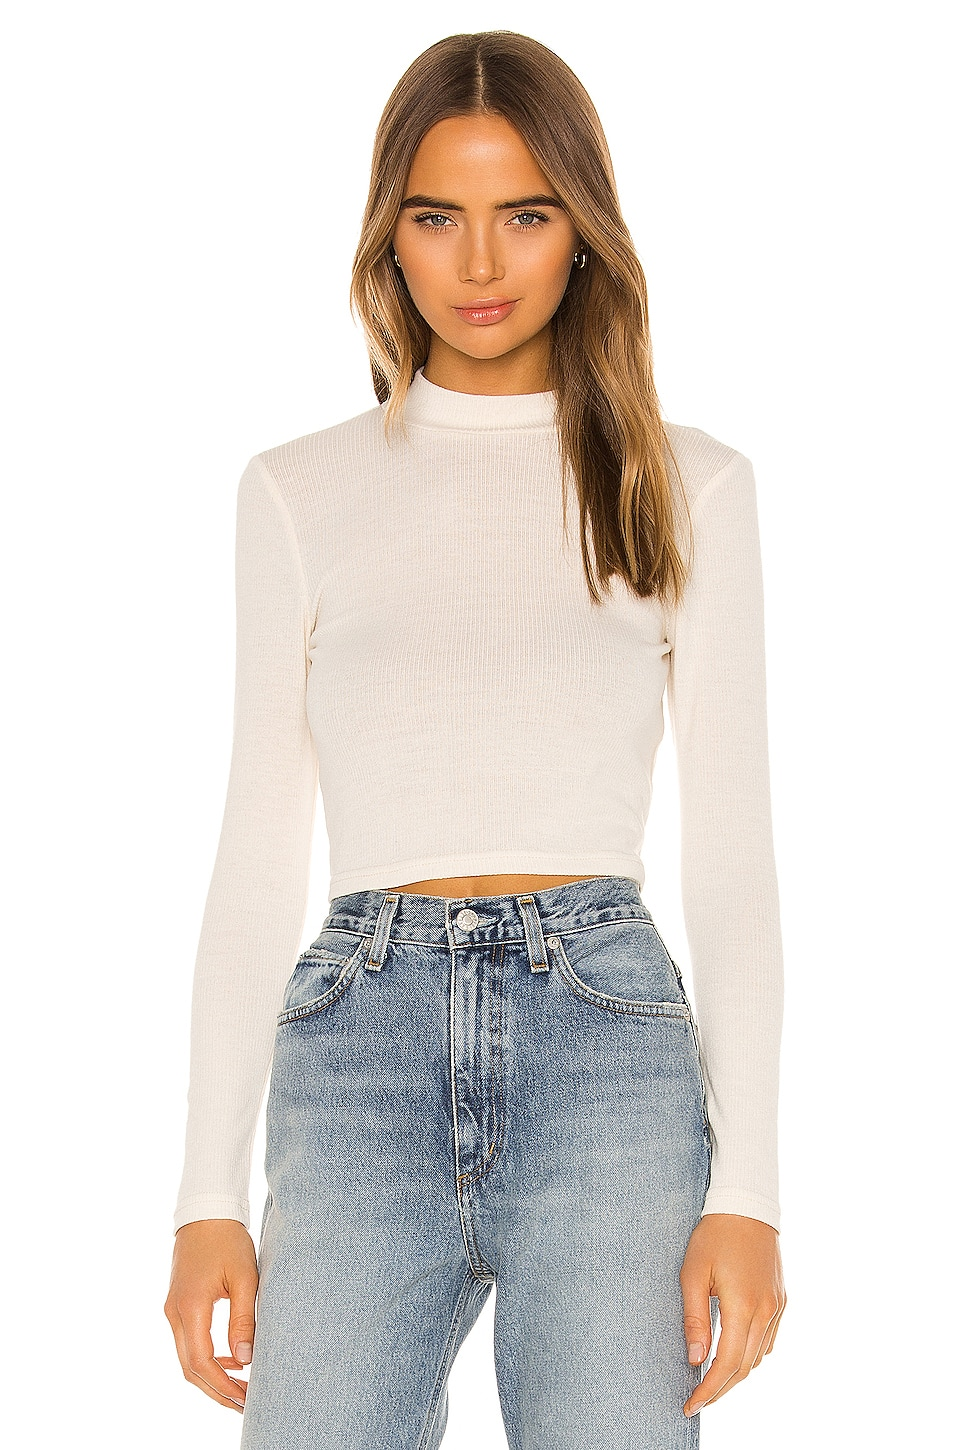 Privacy Please Bradley Top in Ivory